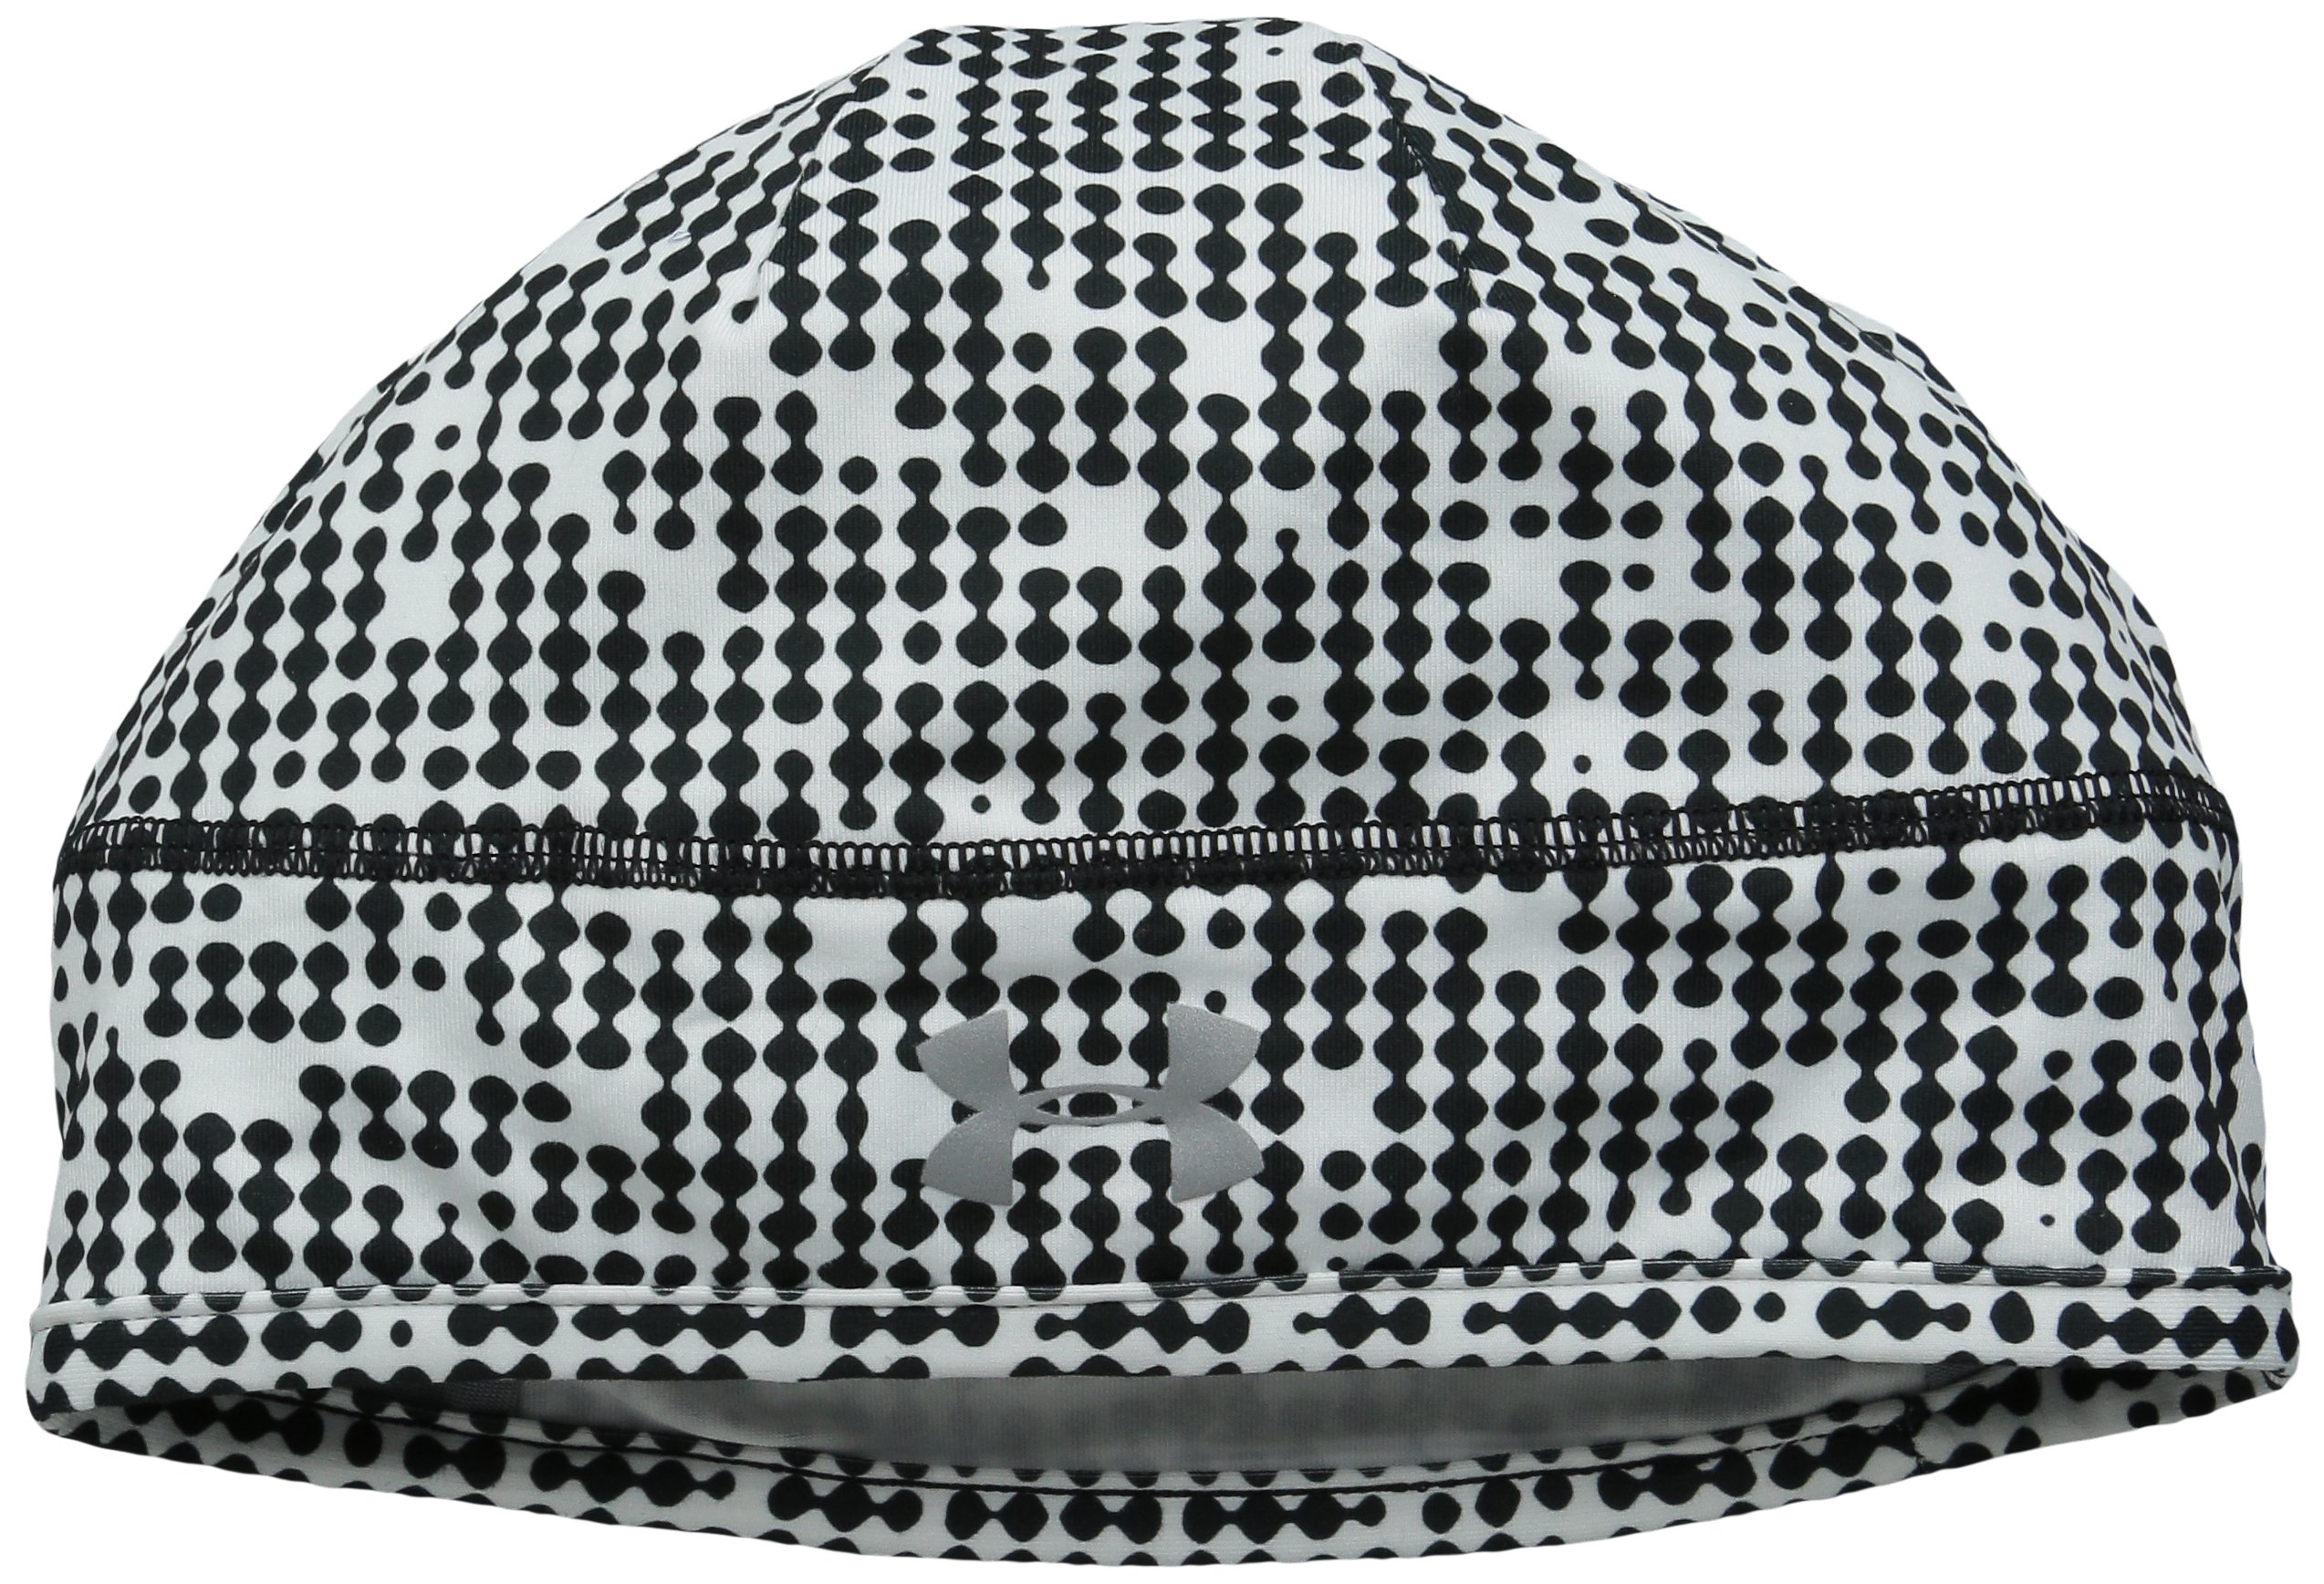 Under Armour Women's Layered Up Beanie, Black /Reflective, One Size